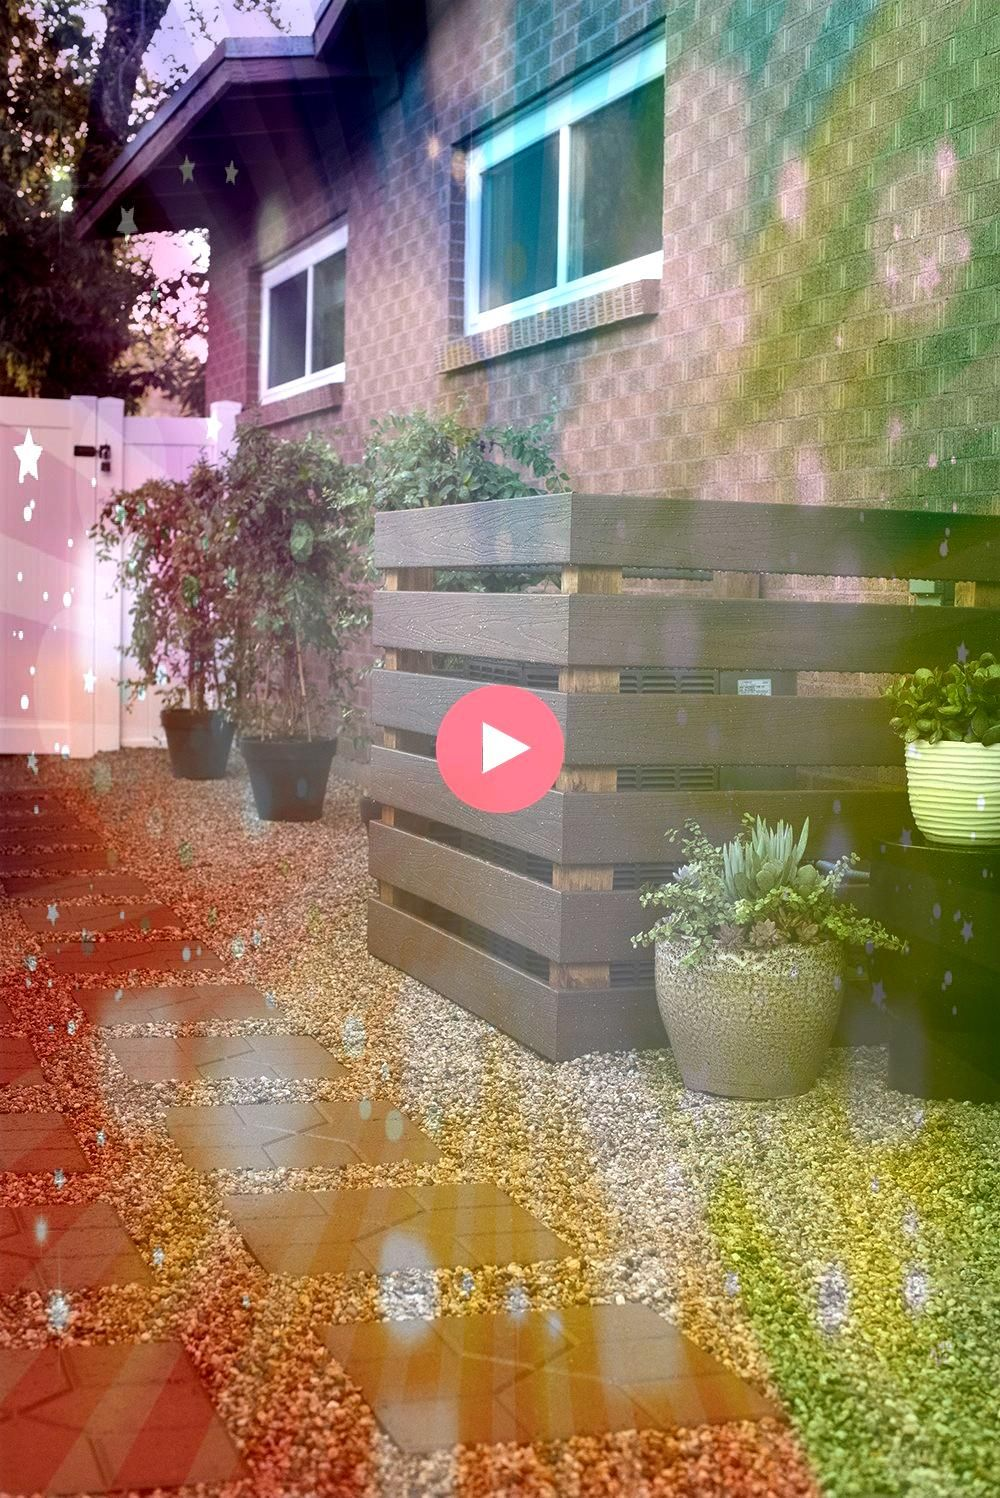 Day Project  Transforming Our Side Yard Laying Stones  Pebble Covering Air Conditioner3 Day Project  Transforming Our Side Yard Laying Stones  Pebble Covering Air Conditi...